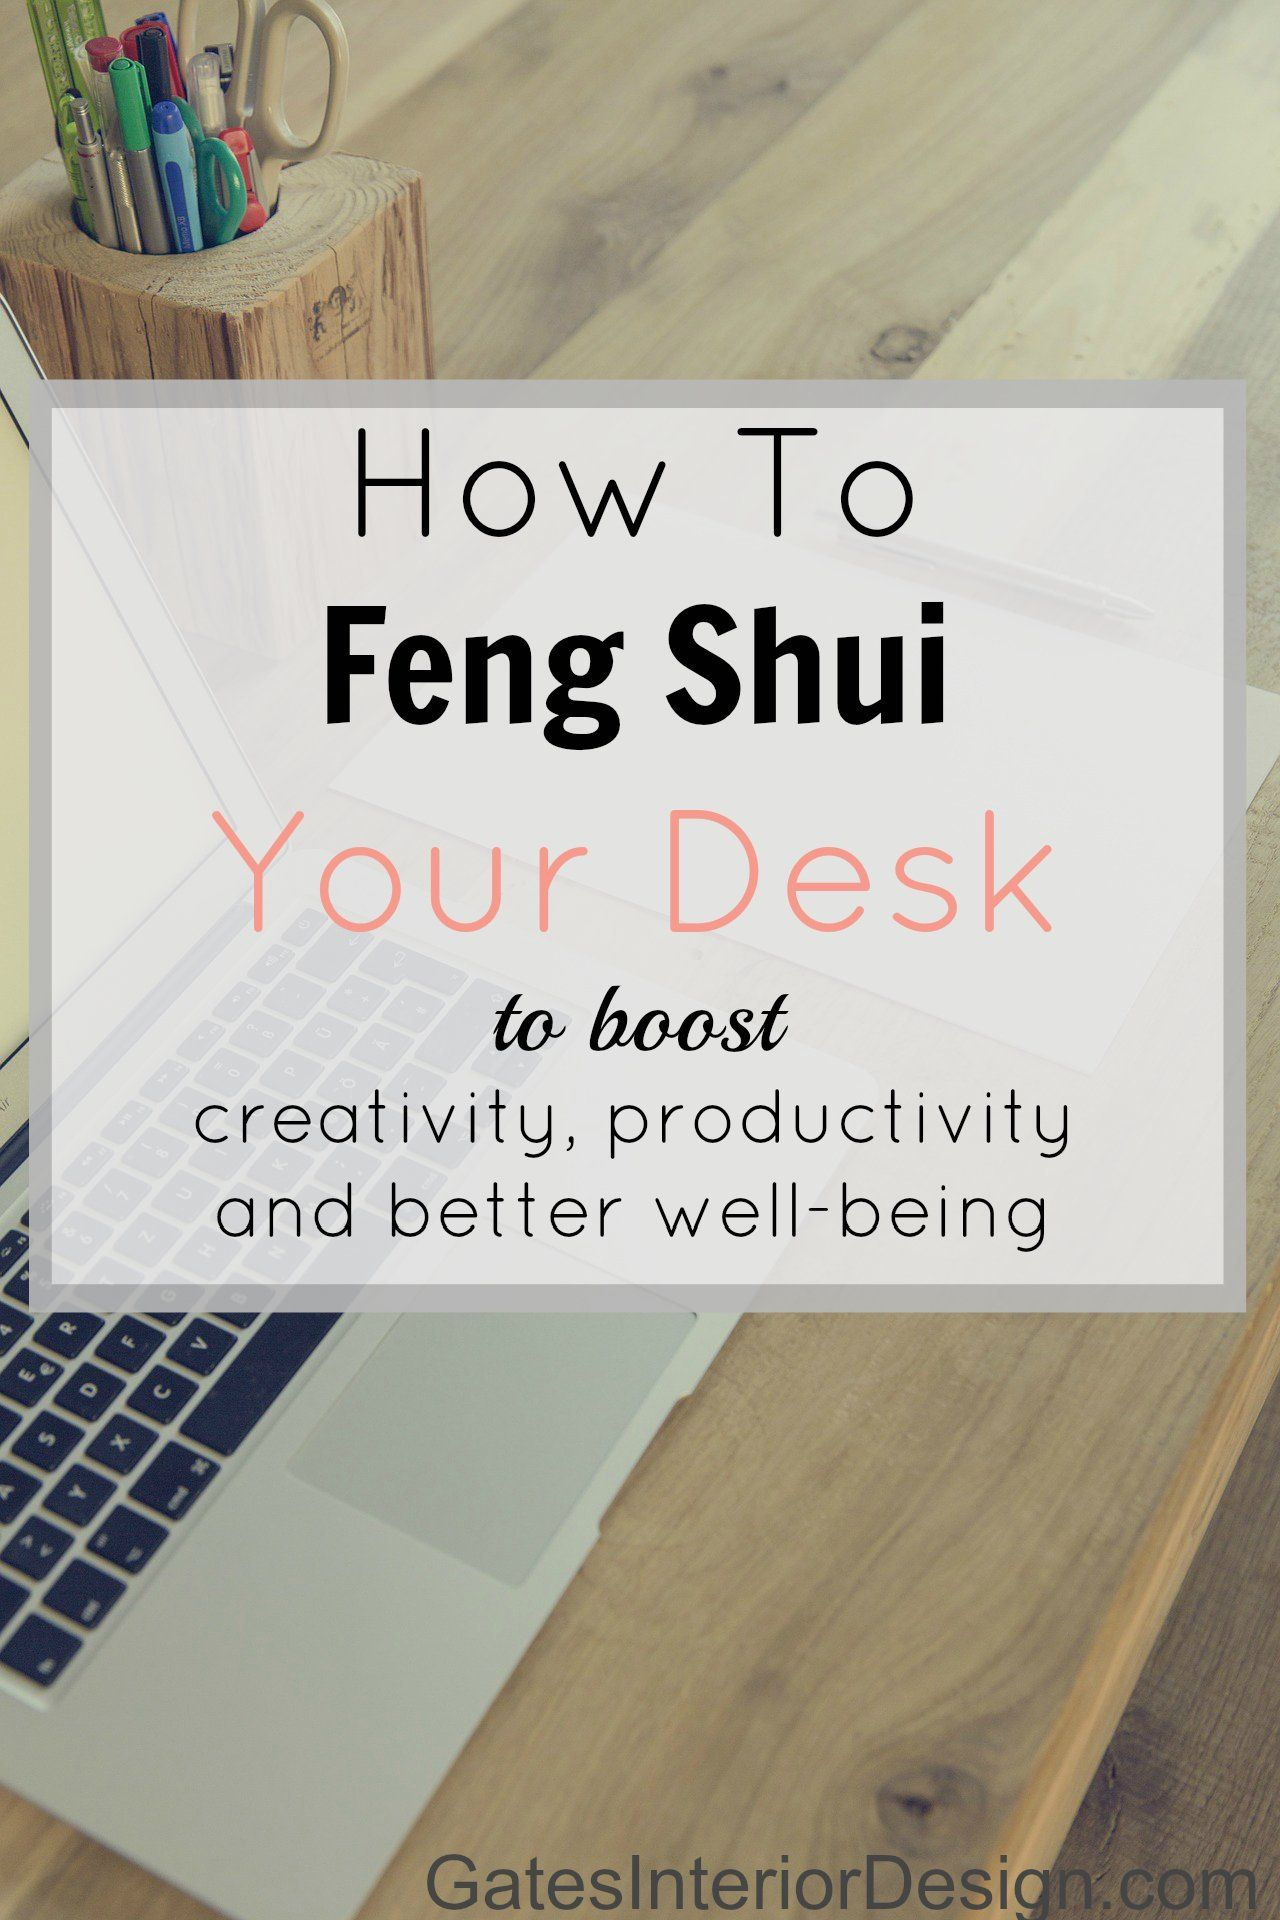 Storage amp organisation home office products housekeeping flooring baby - Here Are Some Tips On How To Feng Shui Your Desk To Boost Productivity Organization